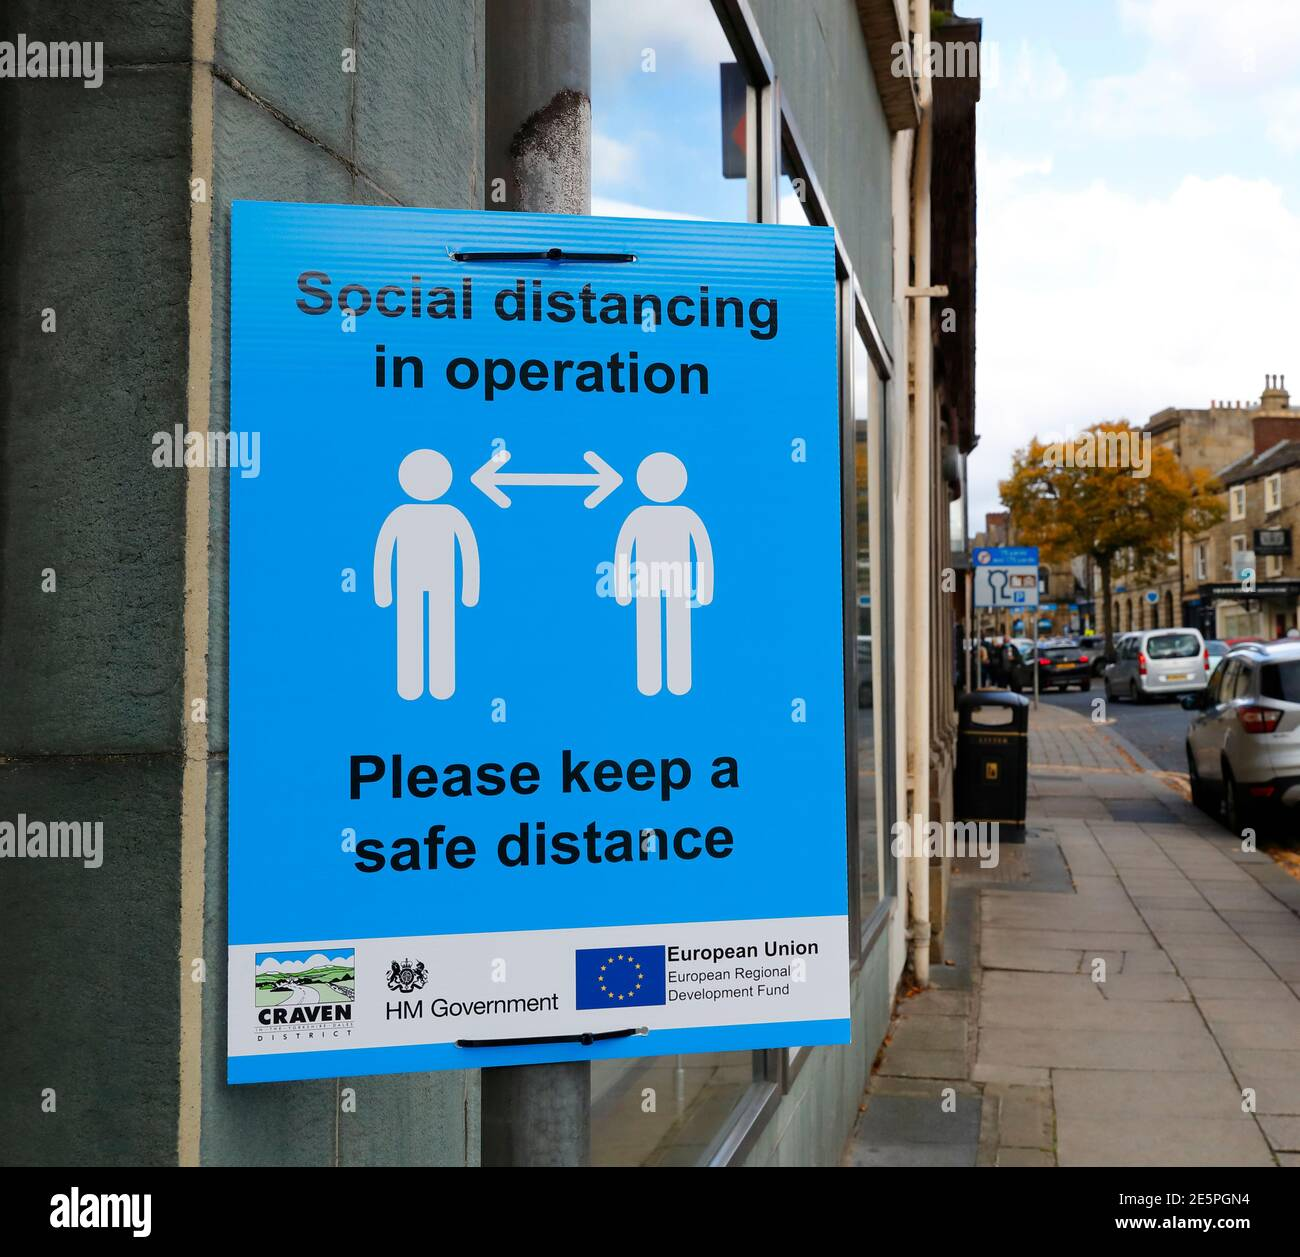 Social distancing information sign in the market town of Skipton North Yorkshire Stock Photo